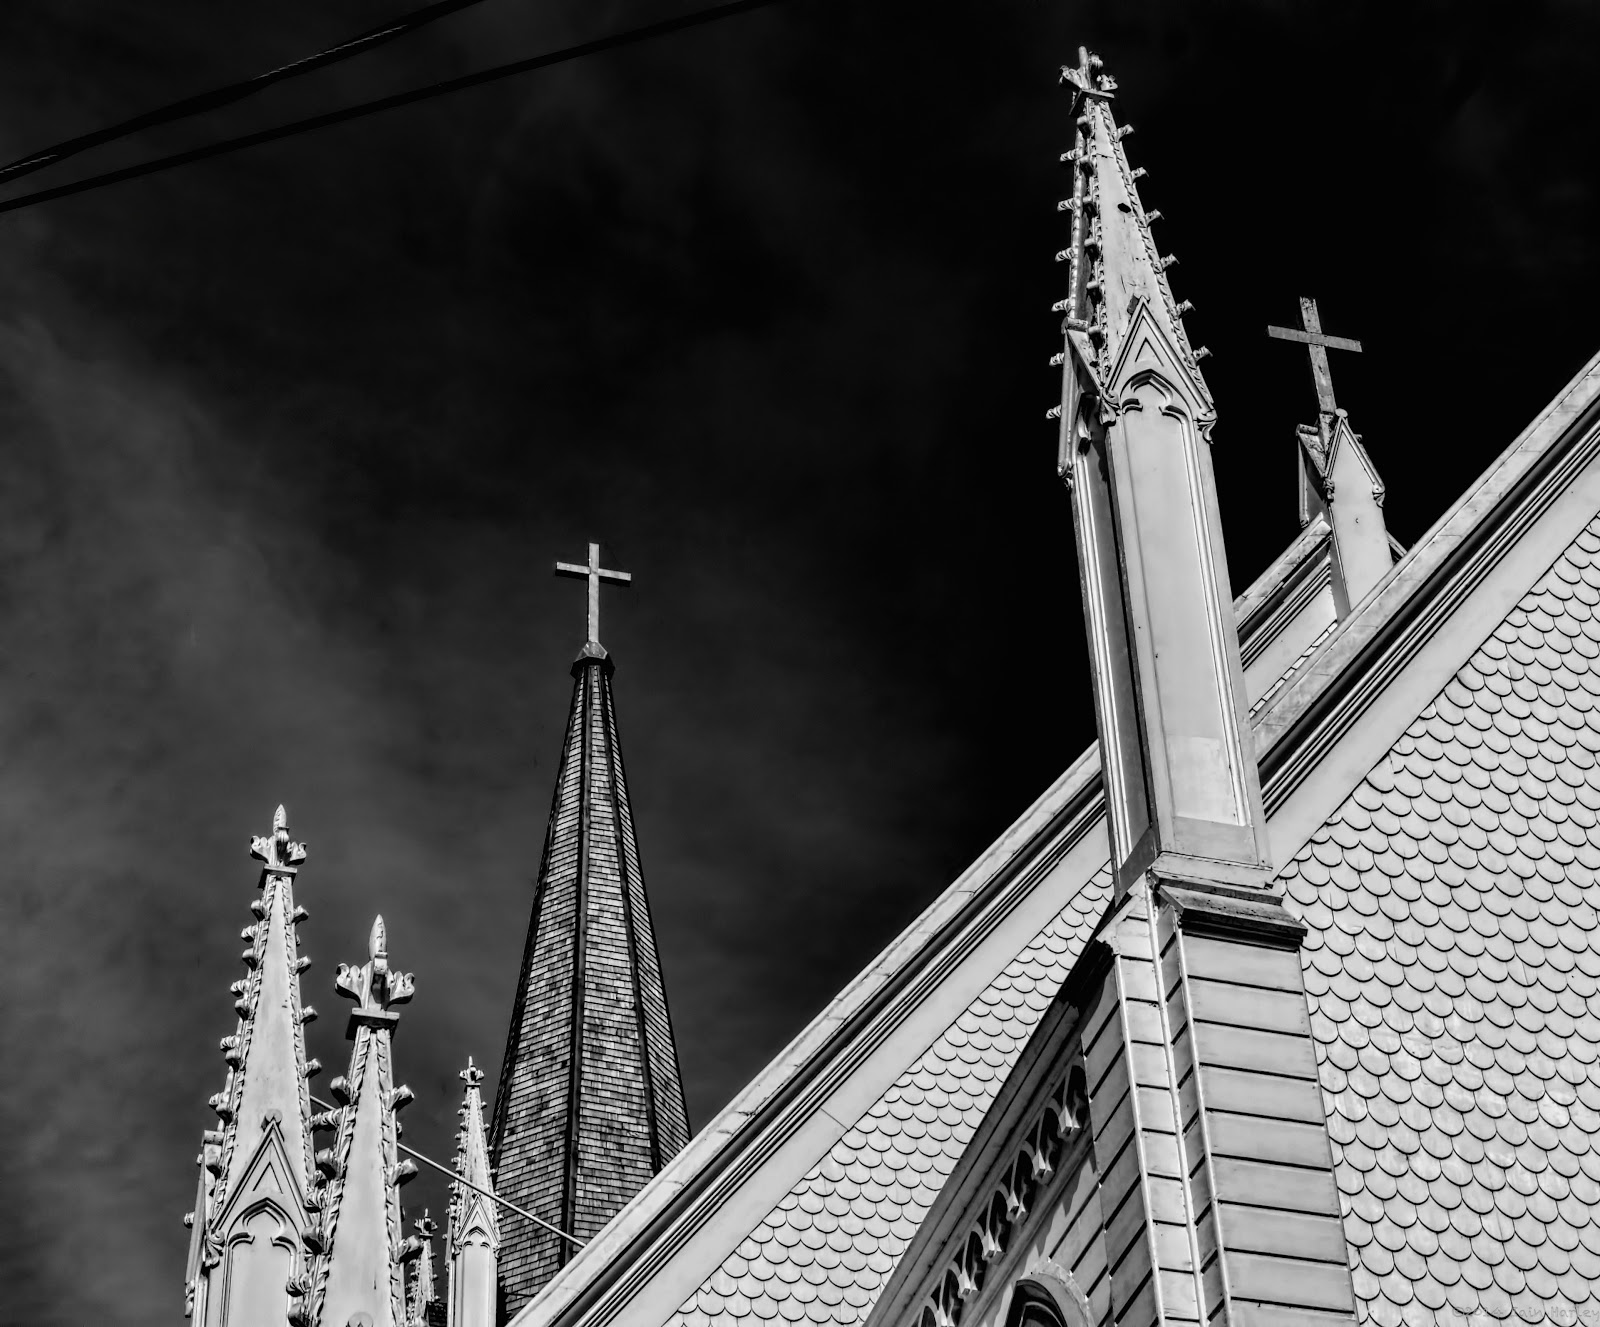 Church Spires in black & white